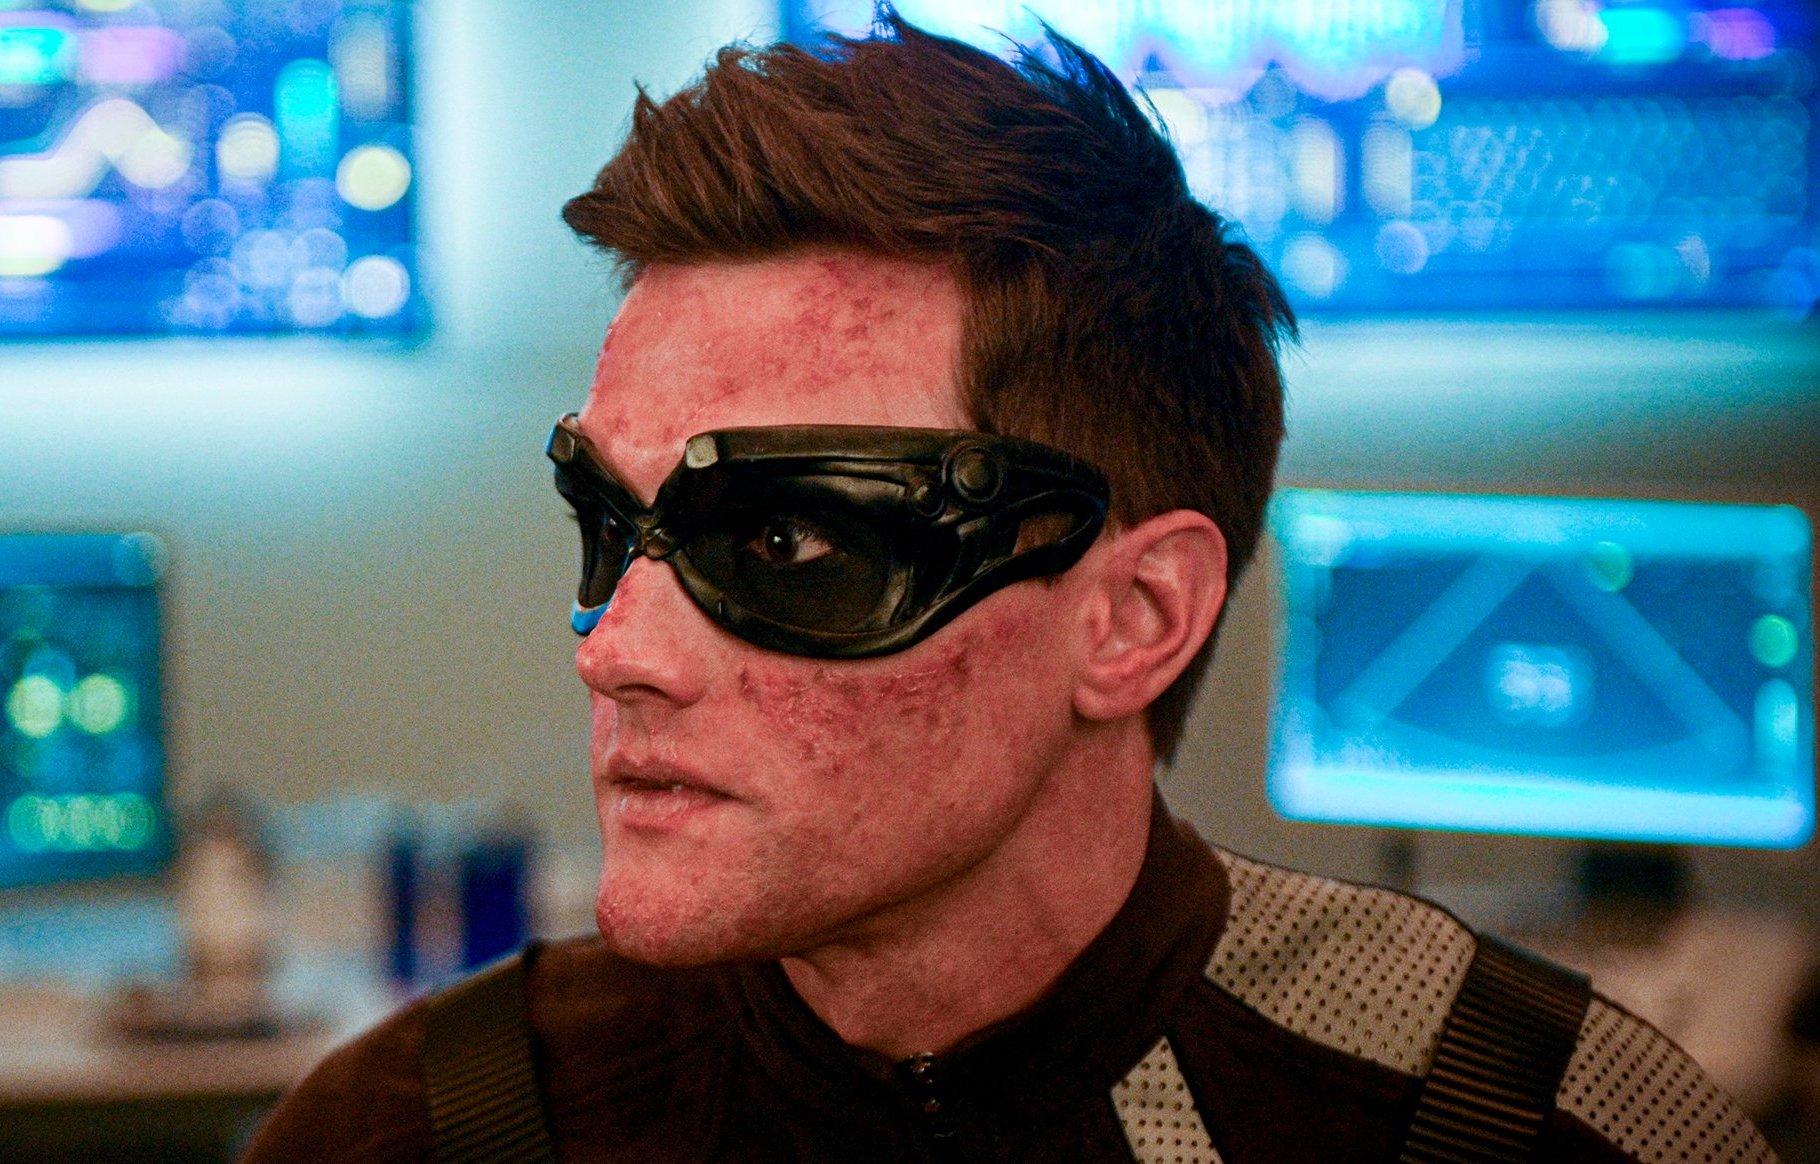 'The Flash' Actor Hartley Sawyer Fired over Racist and Misogynistic Tweets